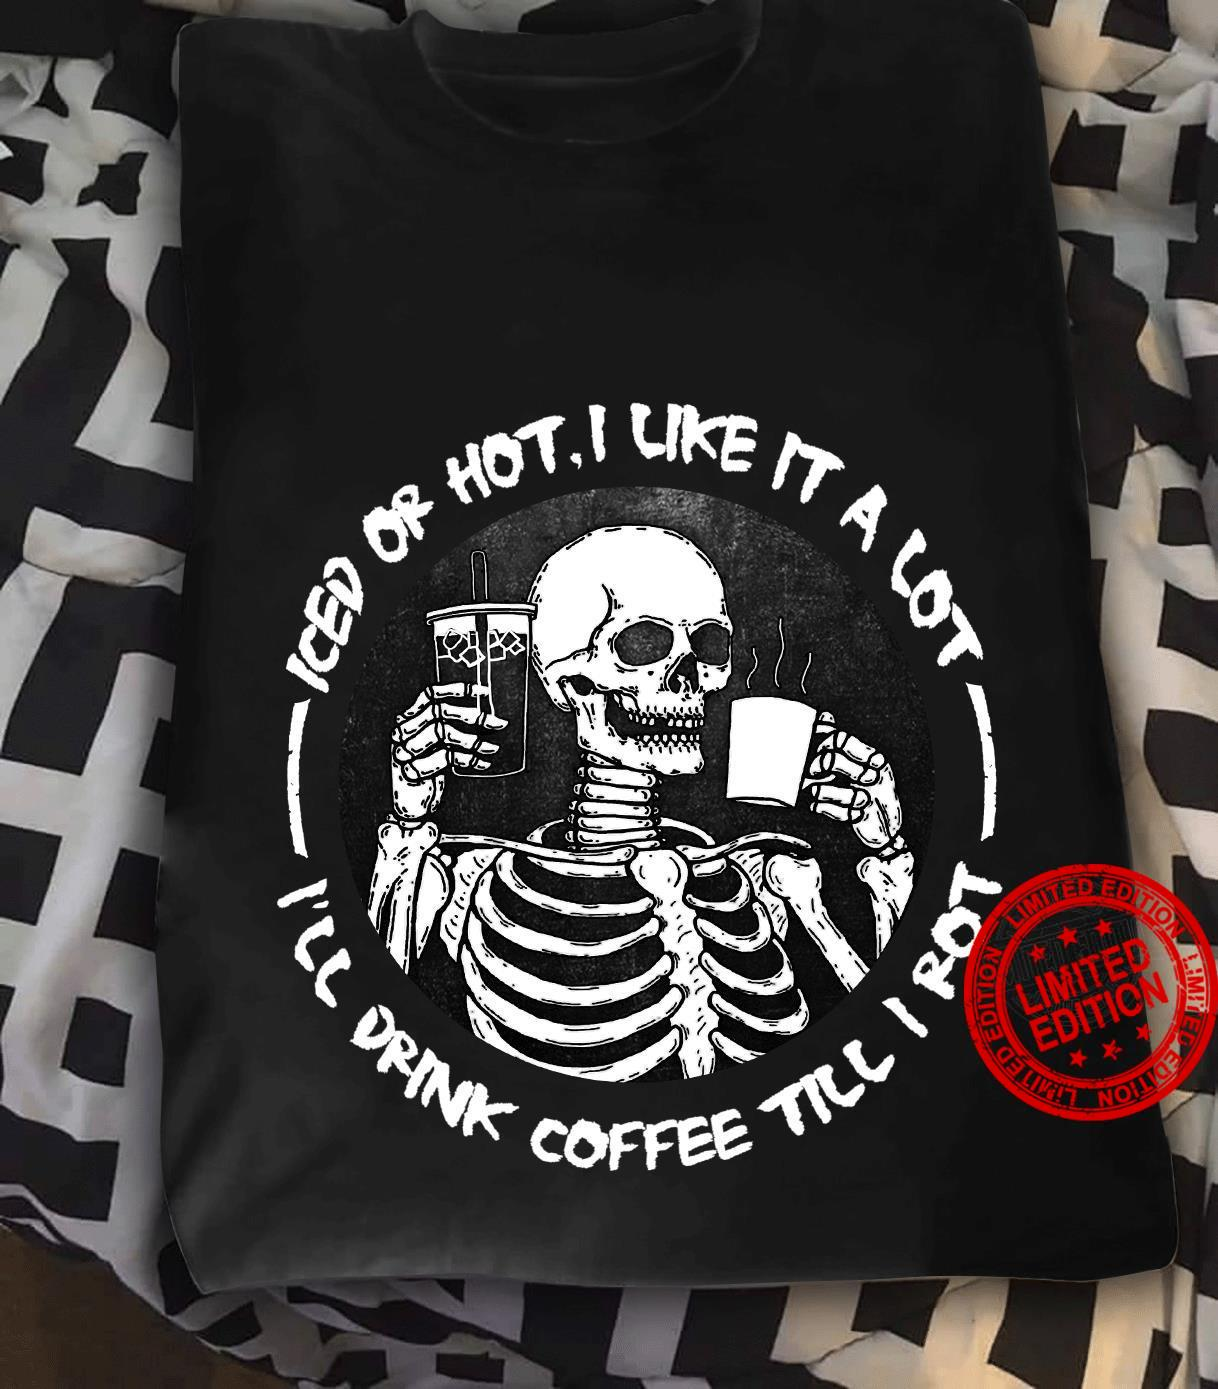 Iced Or Hot I Like It ALot I'll Drink Coffee Till I Rot Shirt